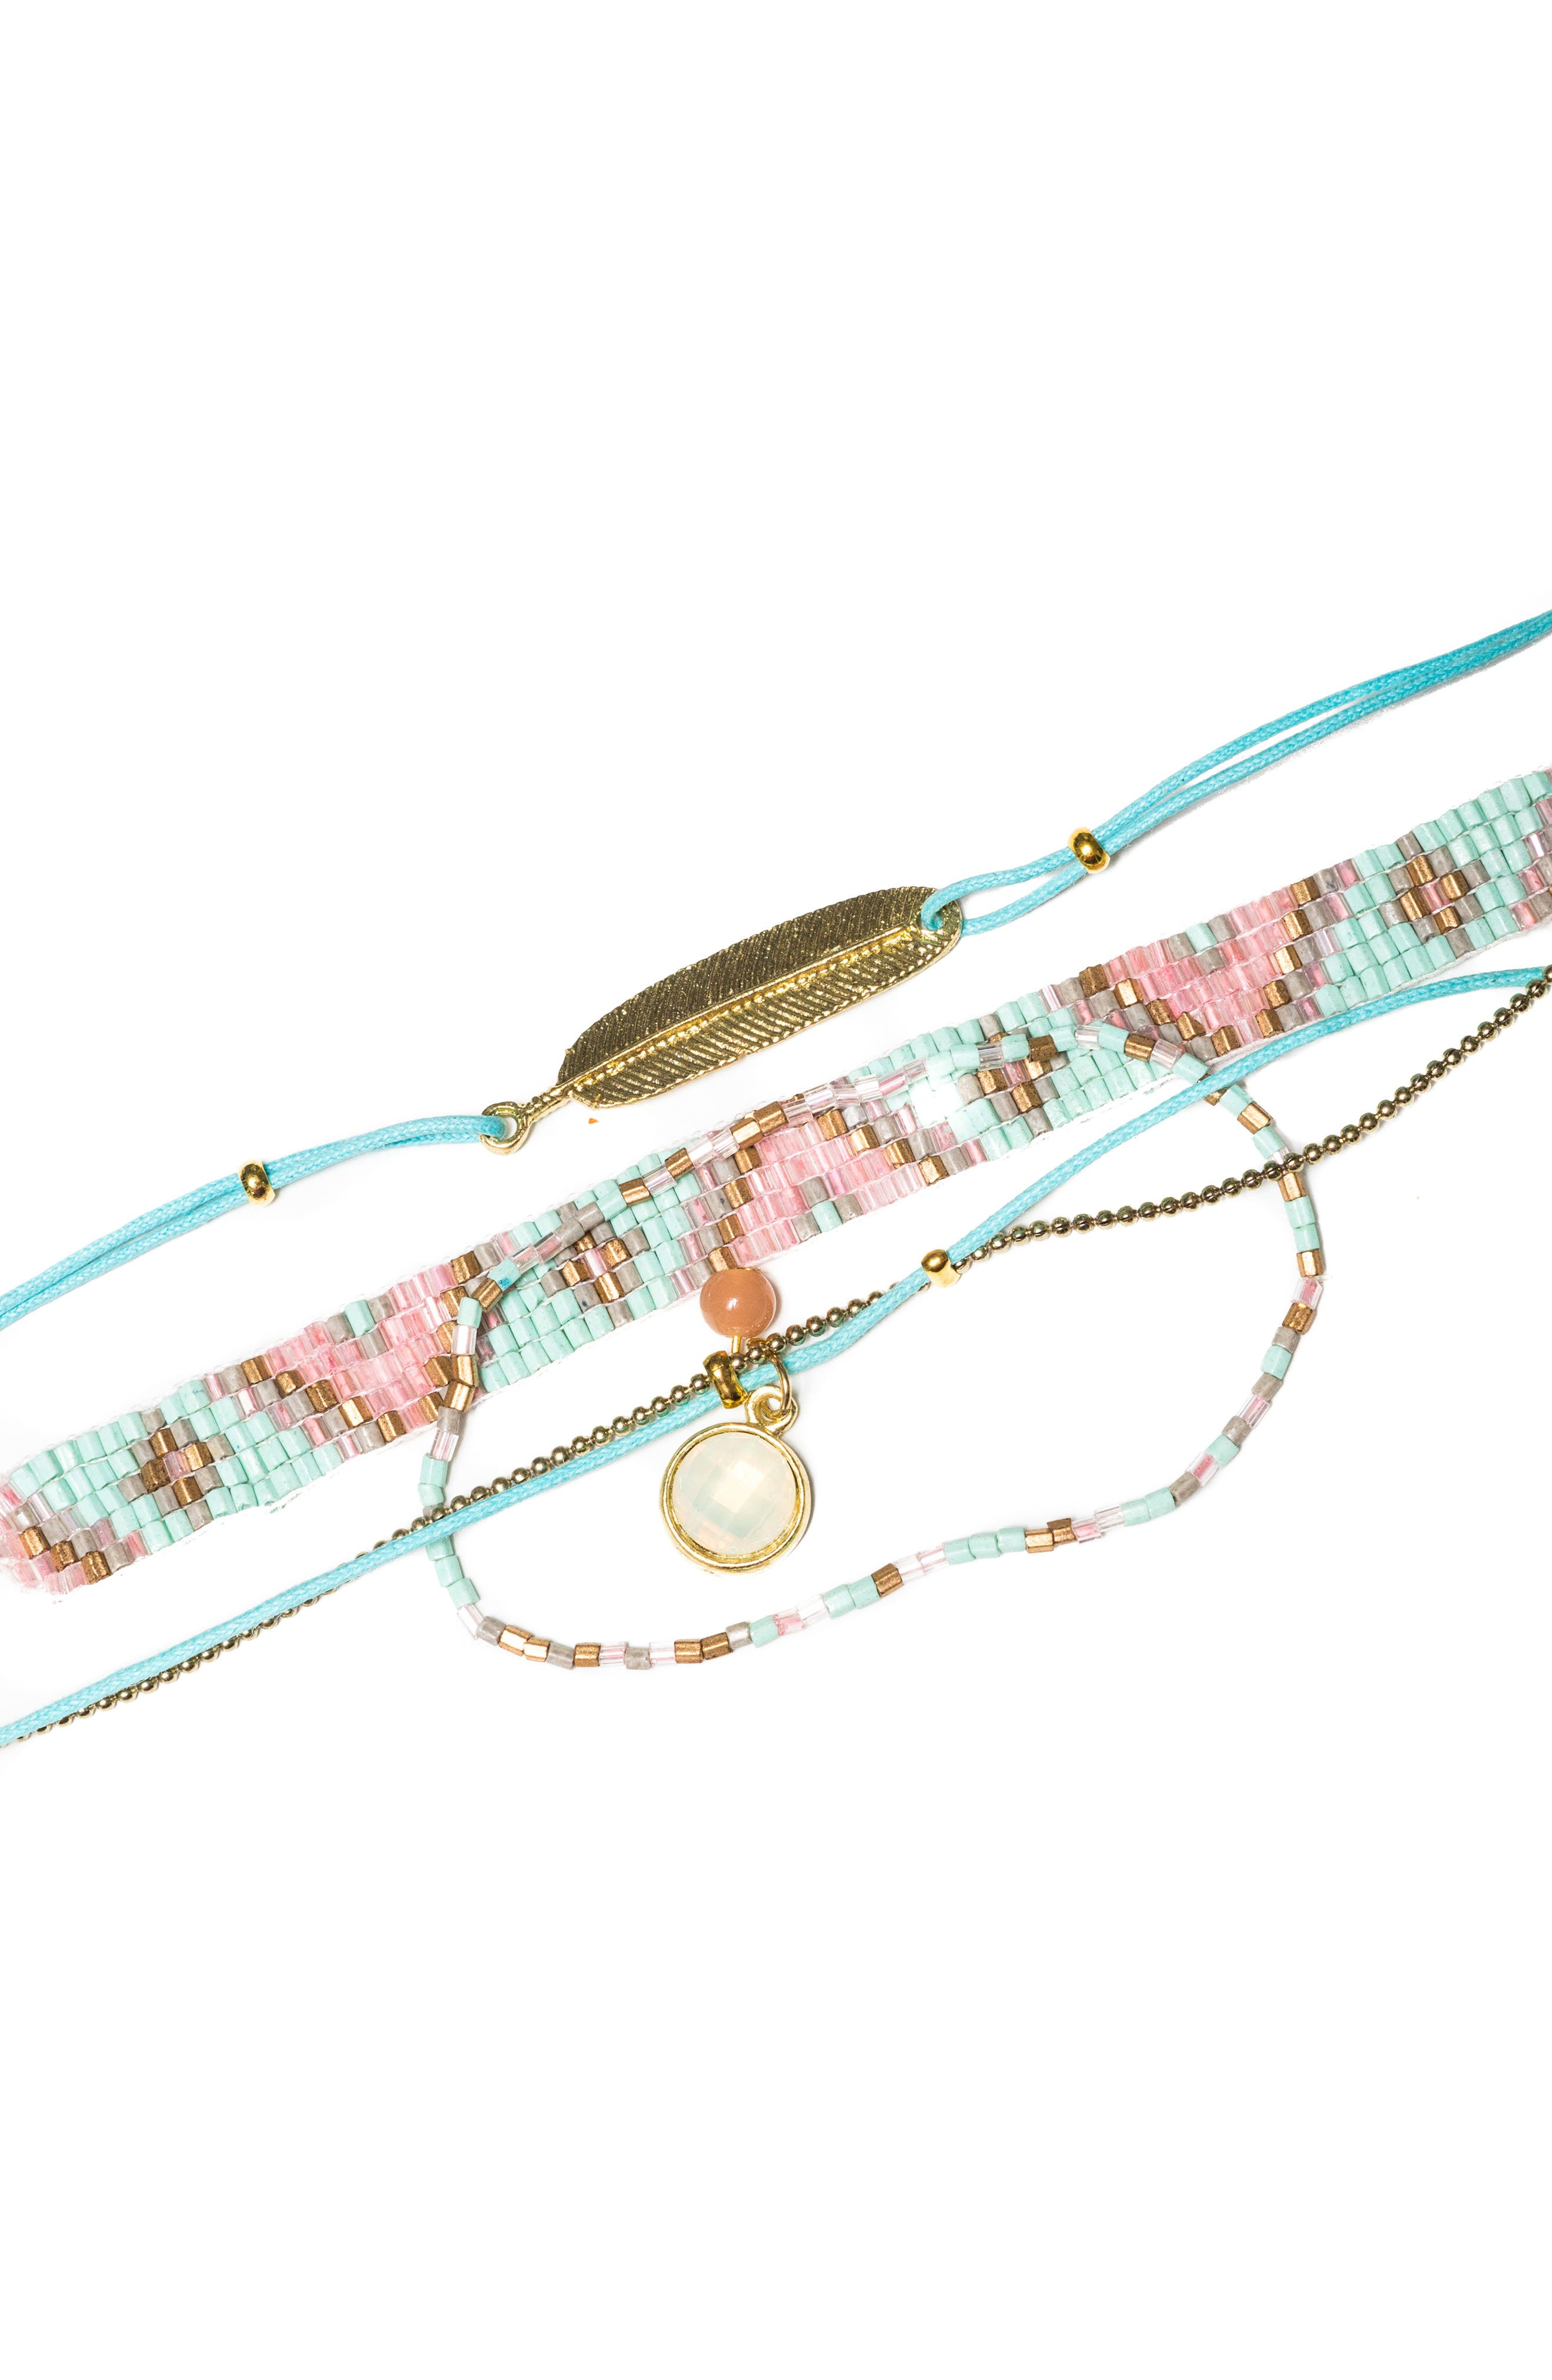 Set of 4 Bead & Charm Bracelets,                         Main,                         color, Pink/ Turquoise/ Amber